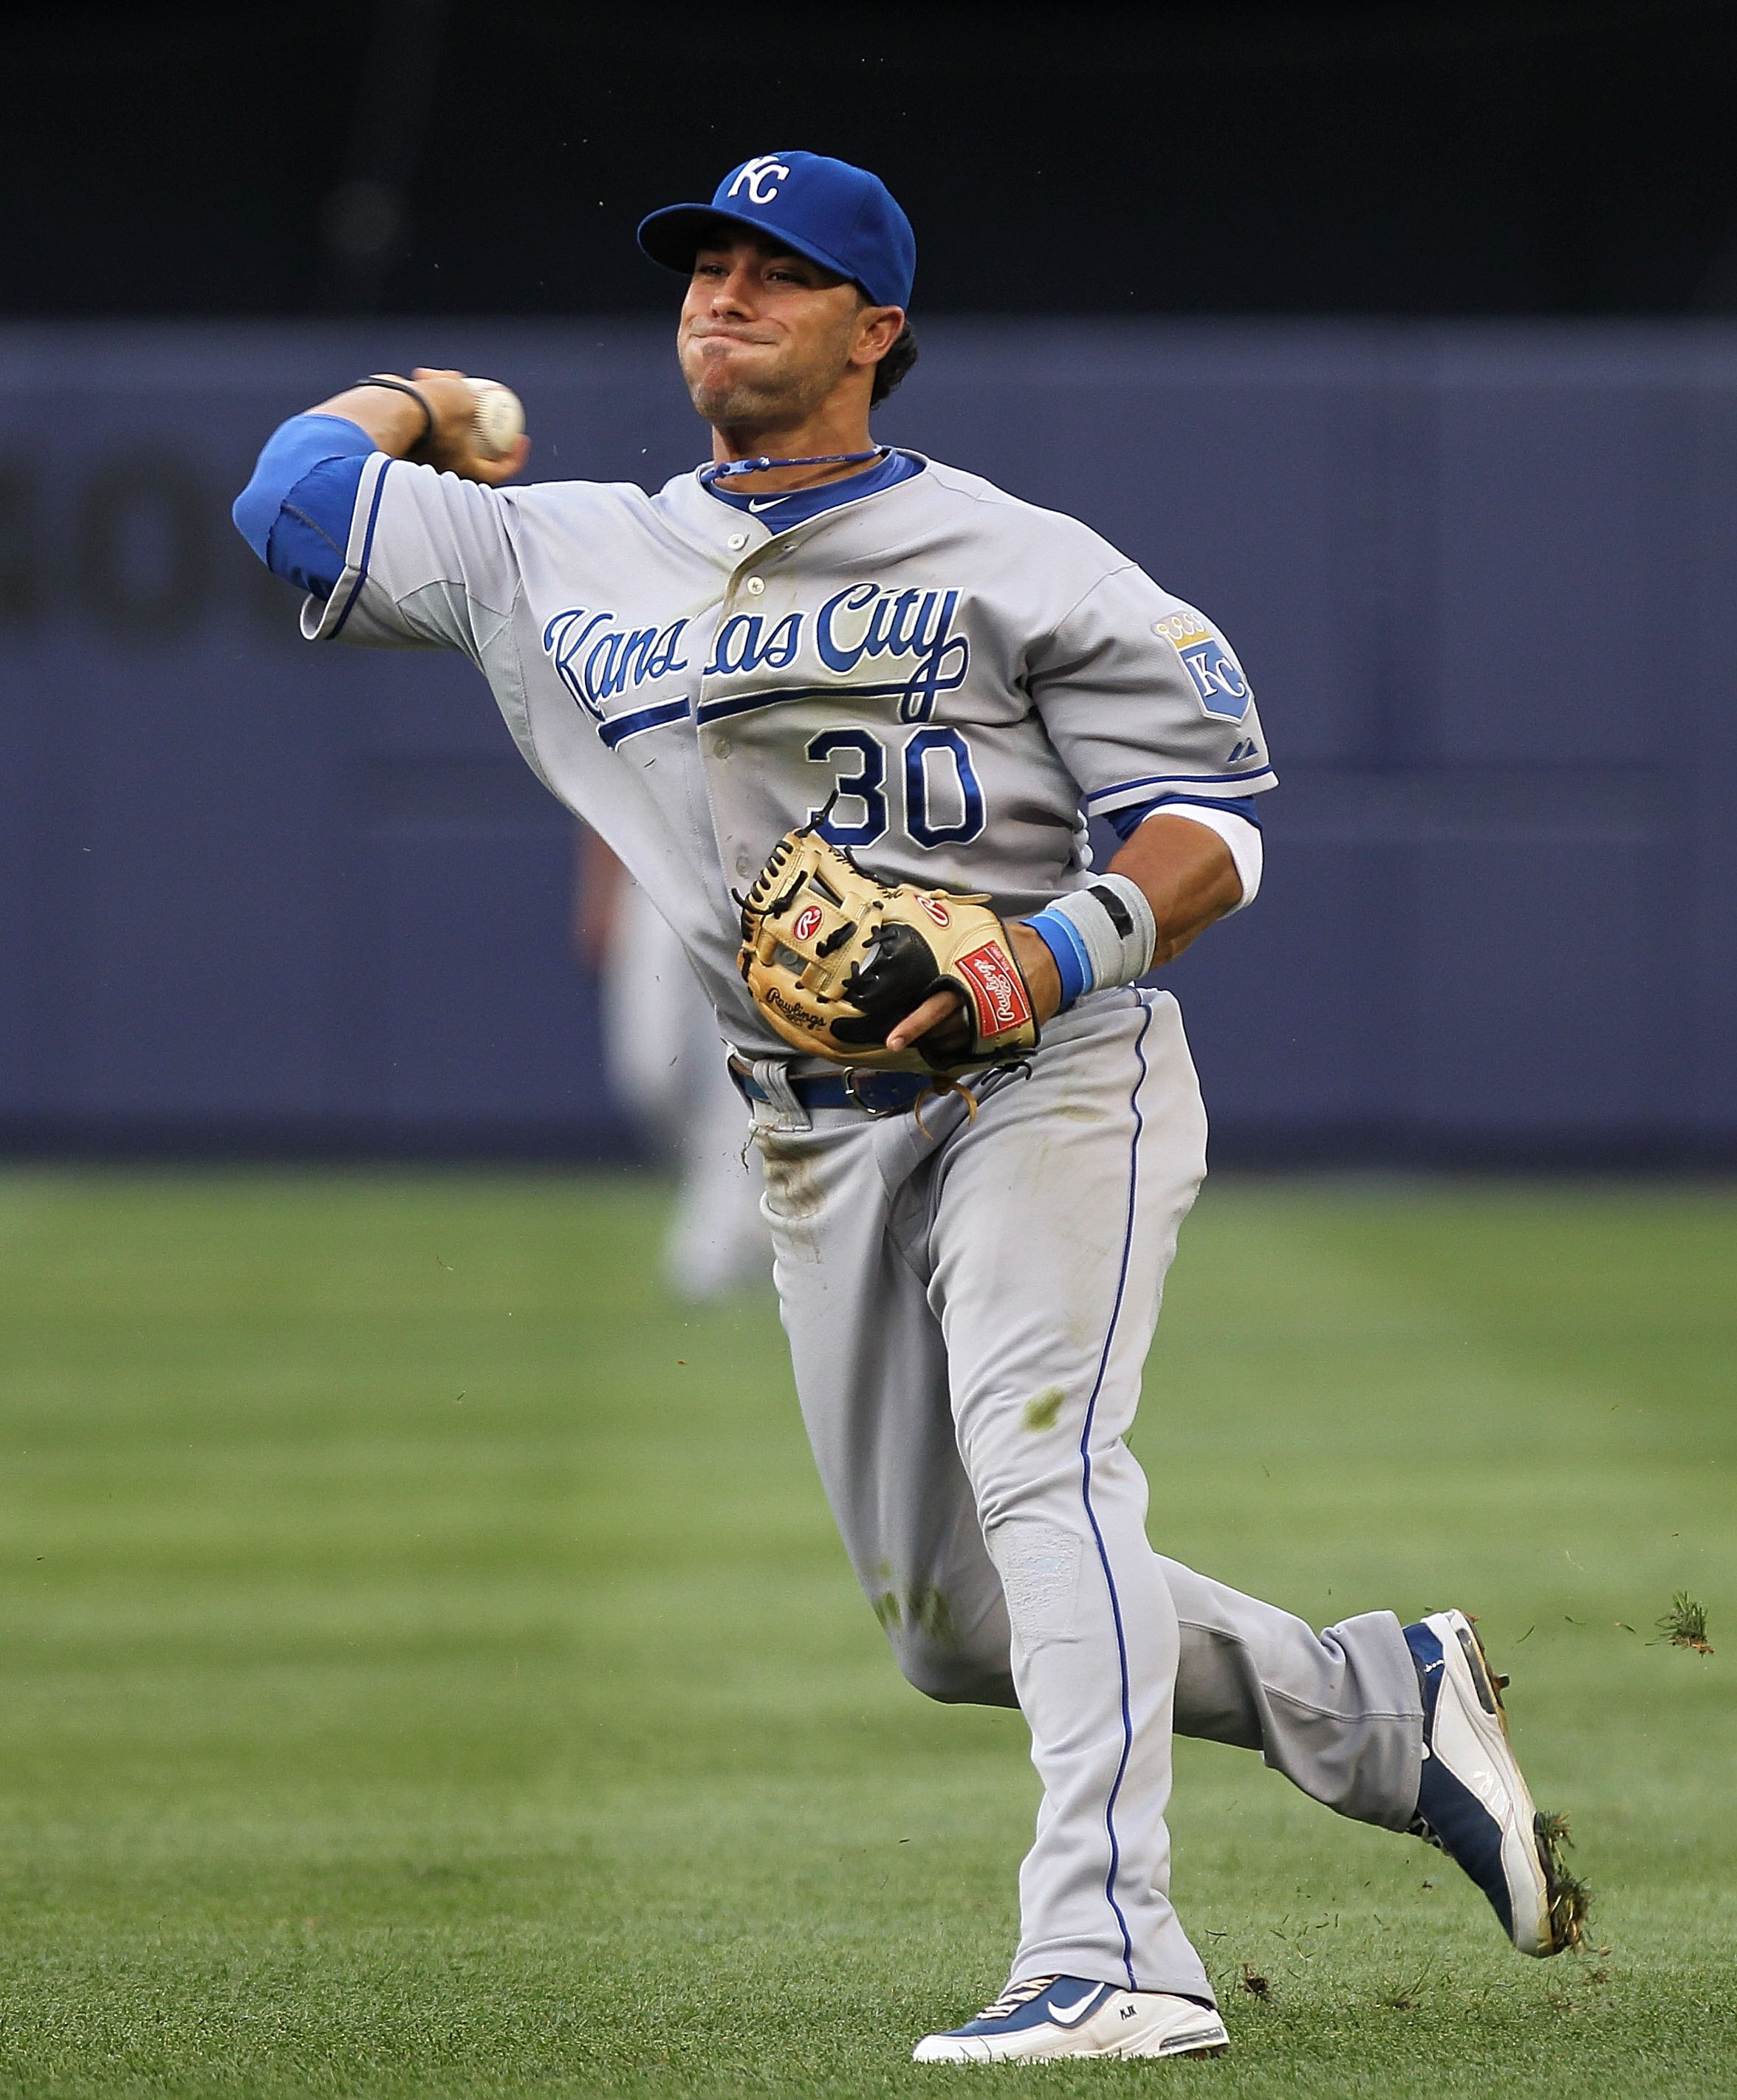 NEW YORK - JULY 22:  Mike Aviles #30 of the Kansas City Royals in the field against the New York Yankees at Yankee Stadium on July 22, 2010 in the Bronx borough of New York City.  (Photo by Nick Laham/Getty Images)